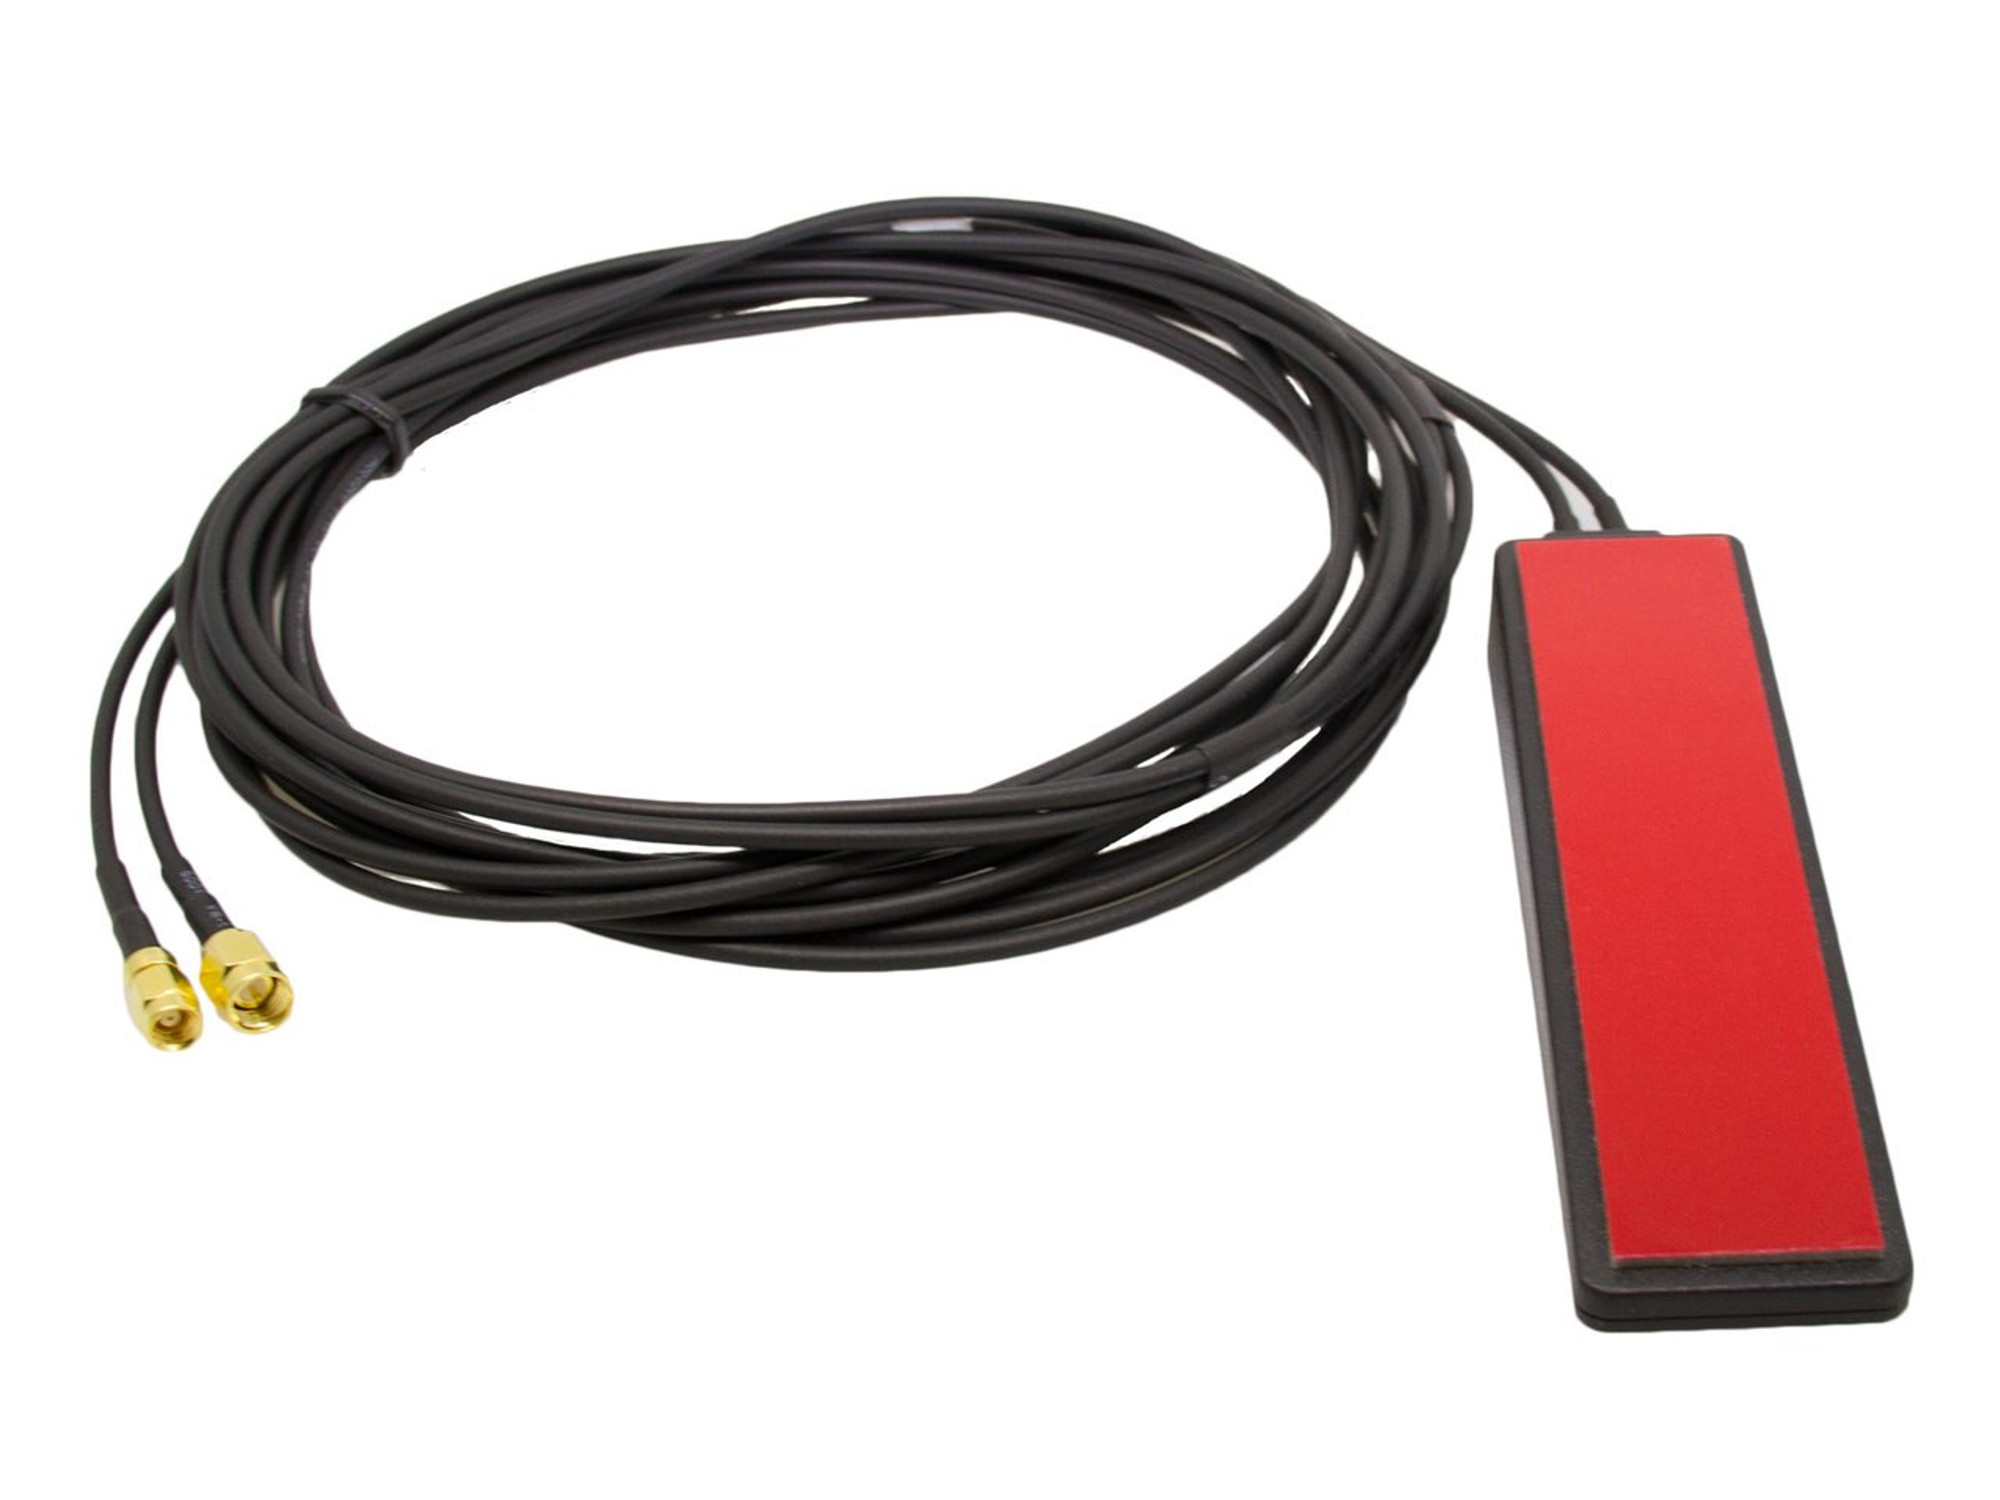 Replacement Antenna for Livewire GPS Vehicle Tracker